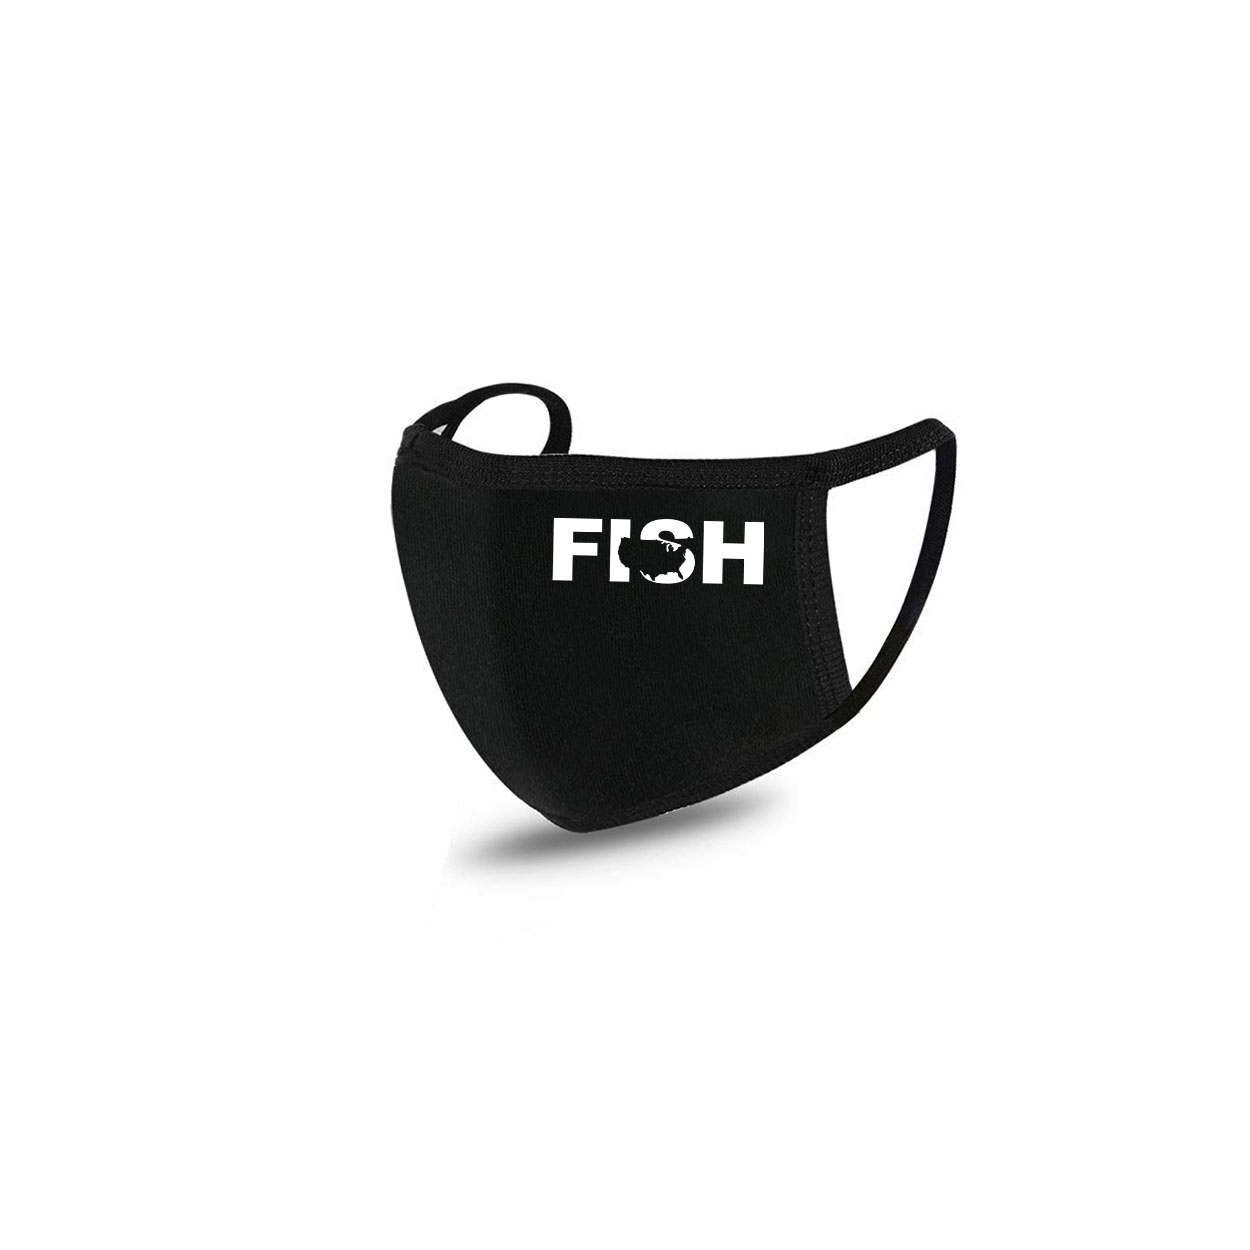 Fish United States Standard Washable Face Mask Black (White Logo)